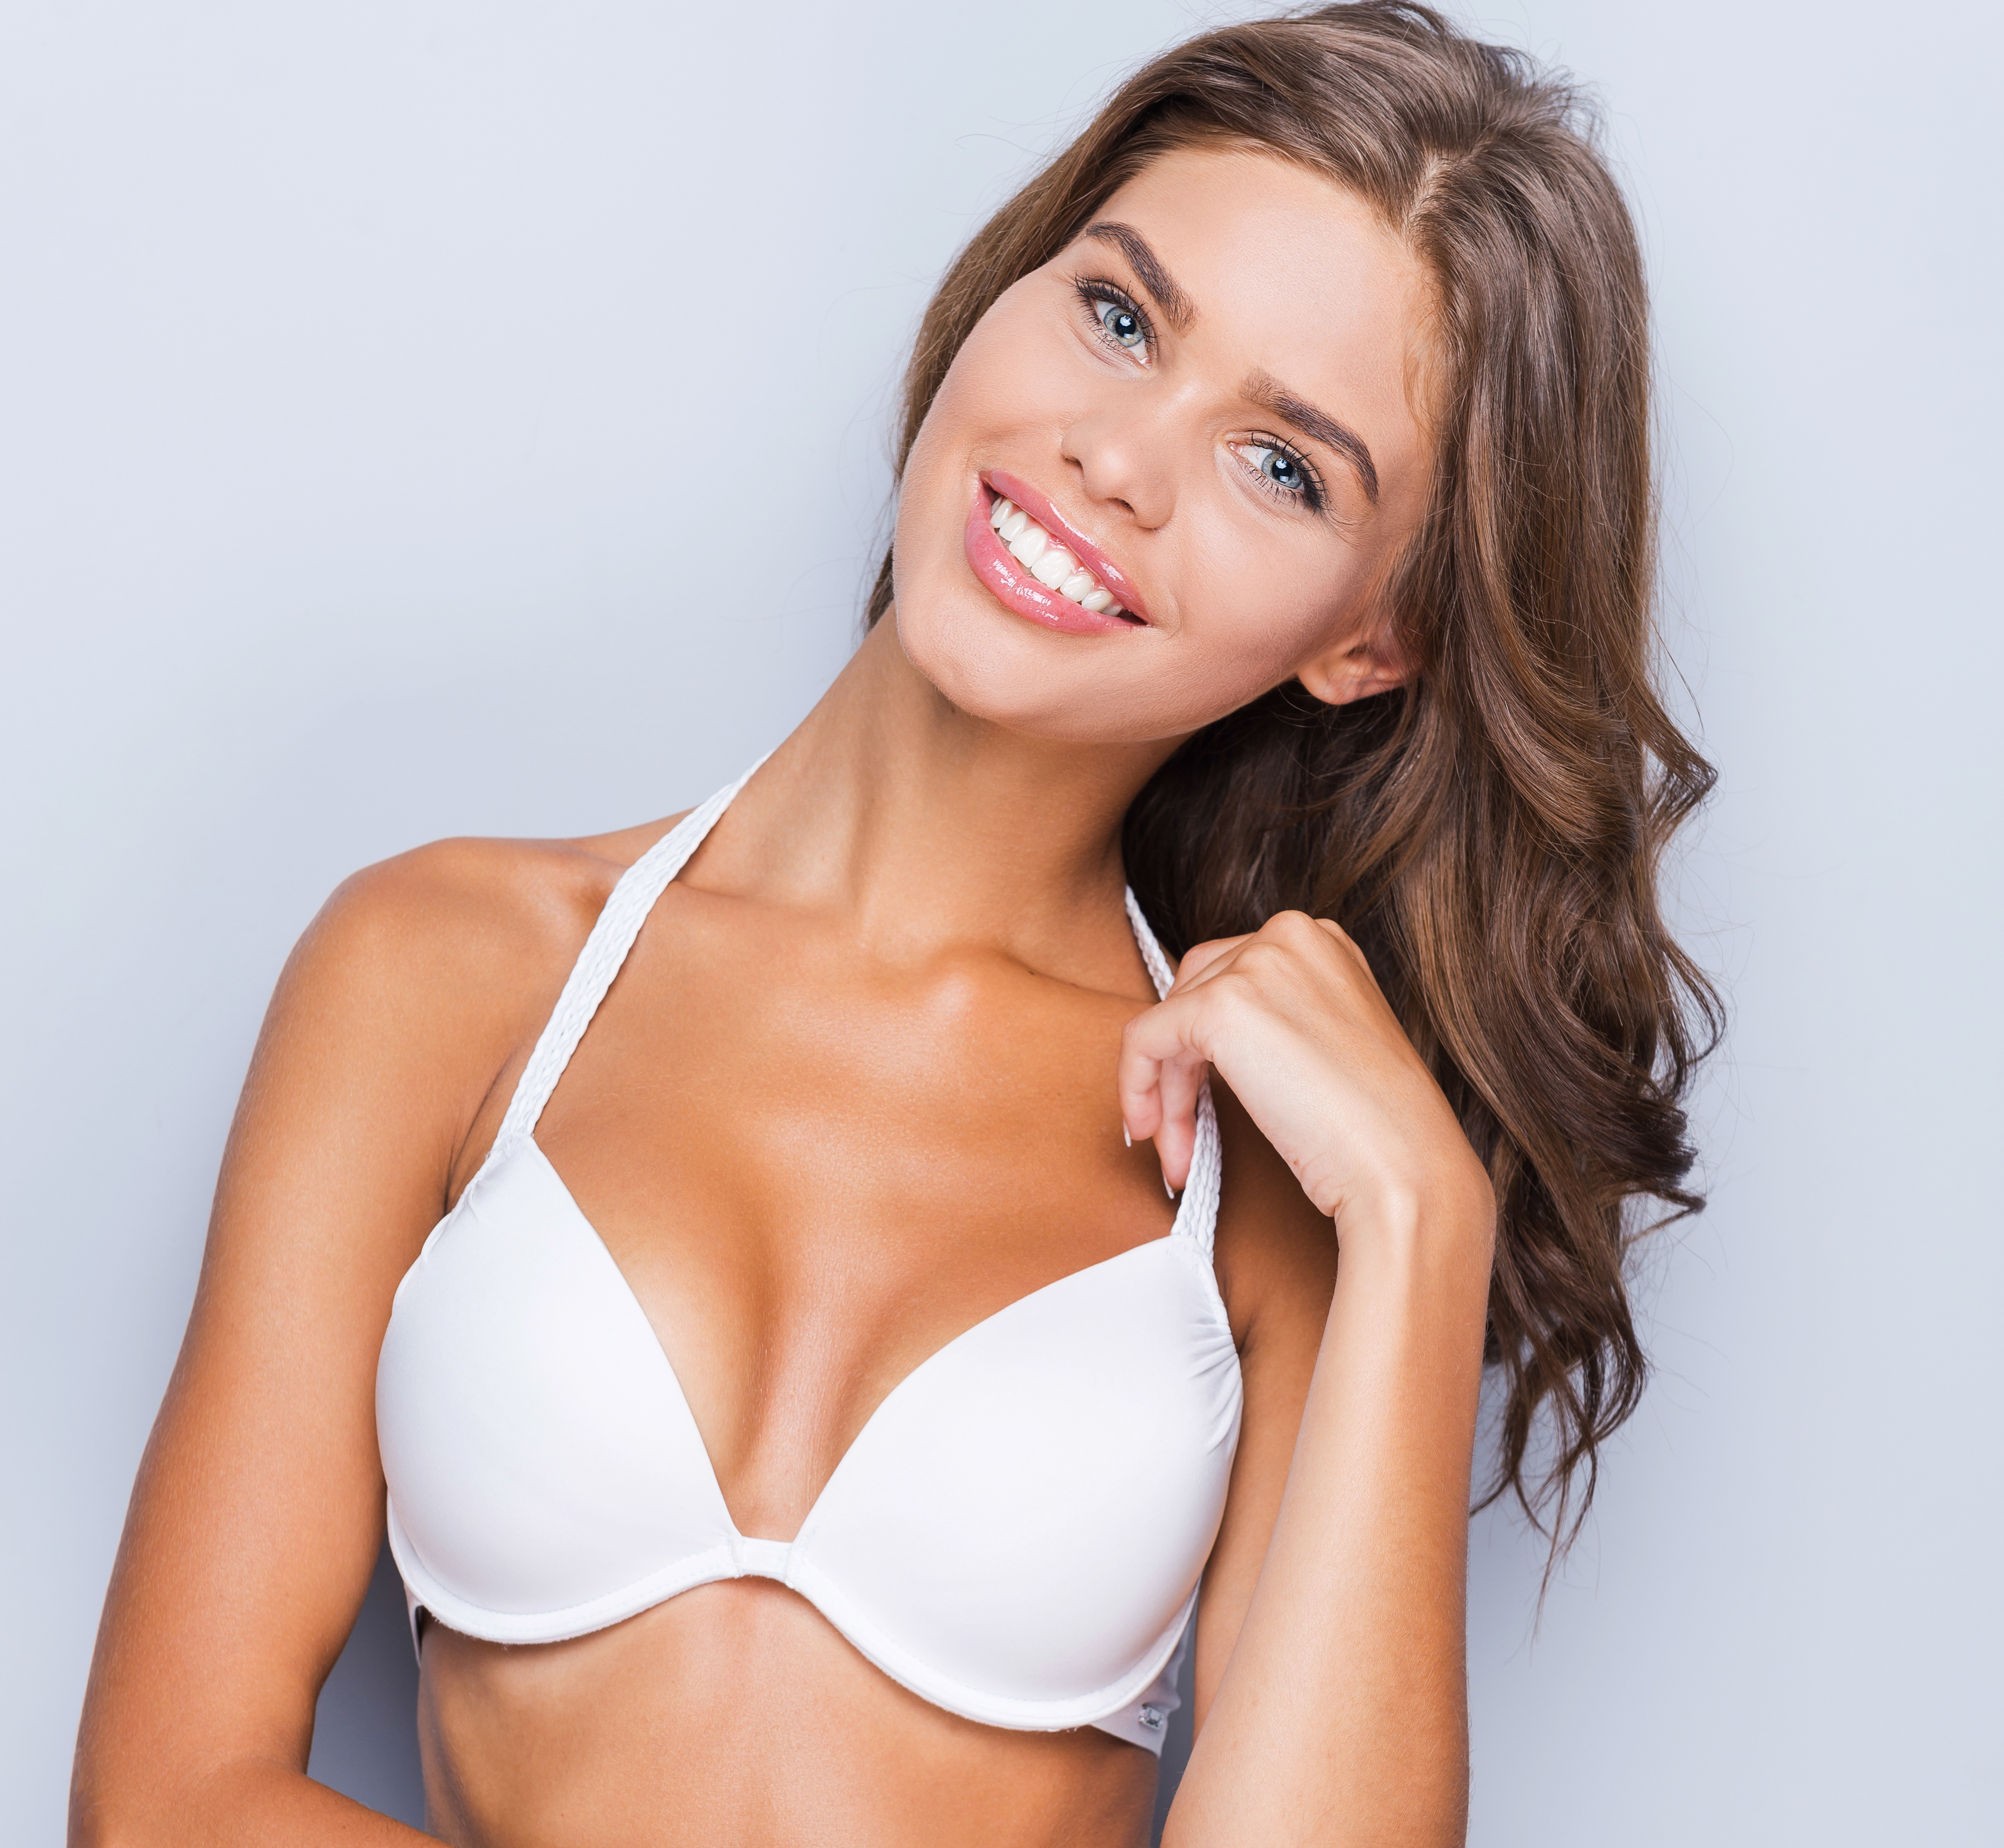 woman in lingere smiling